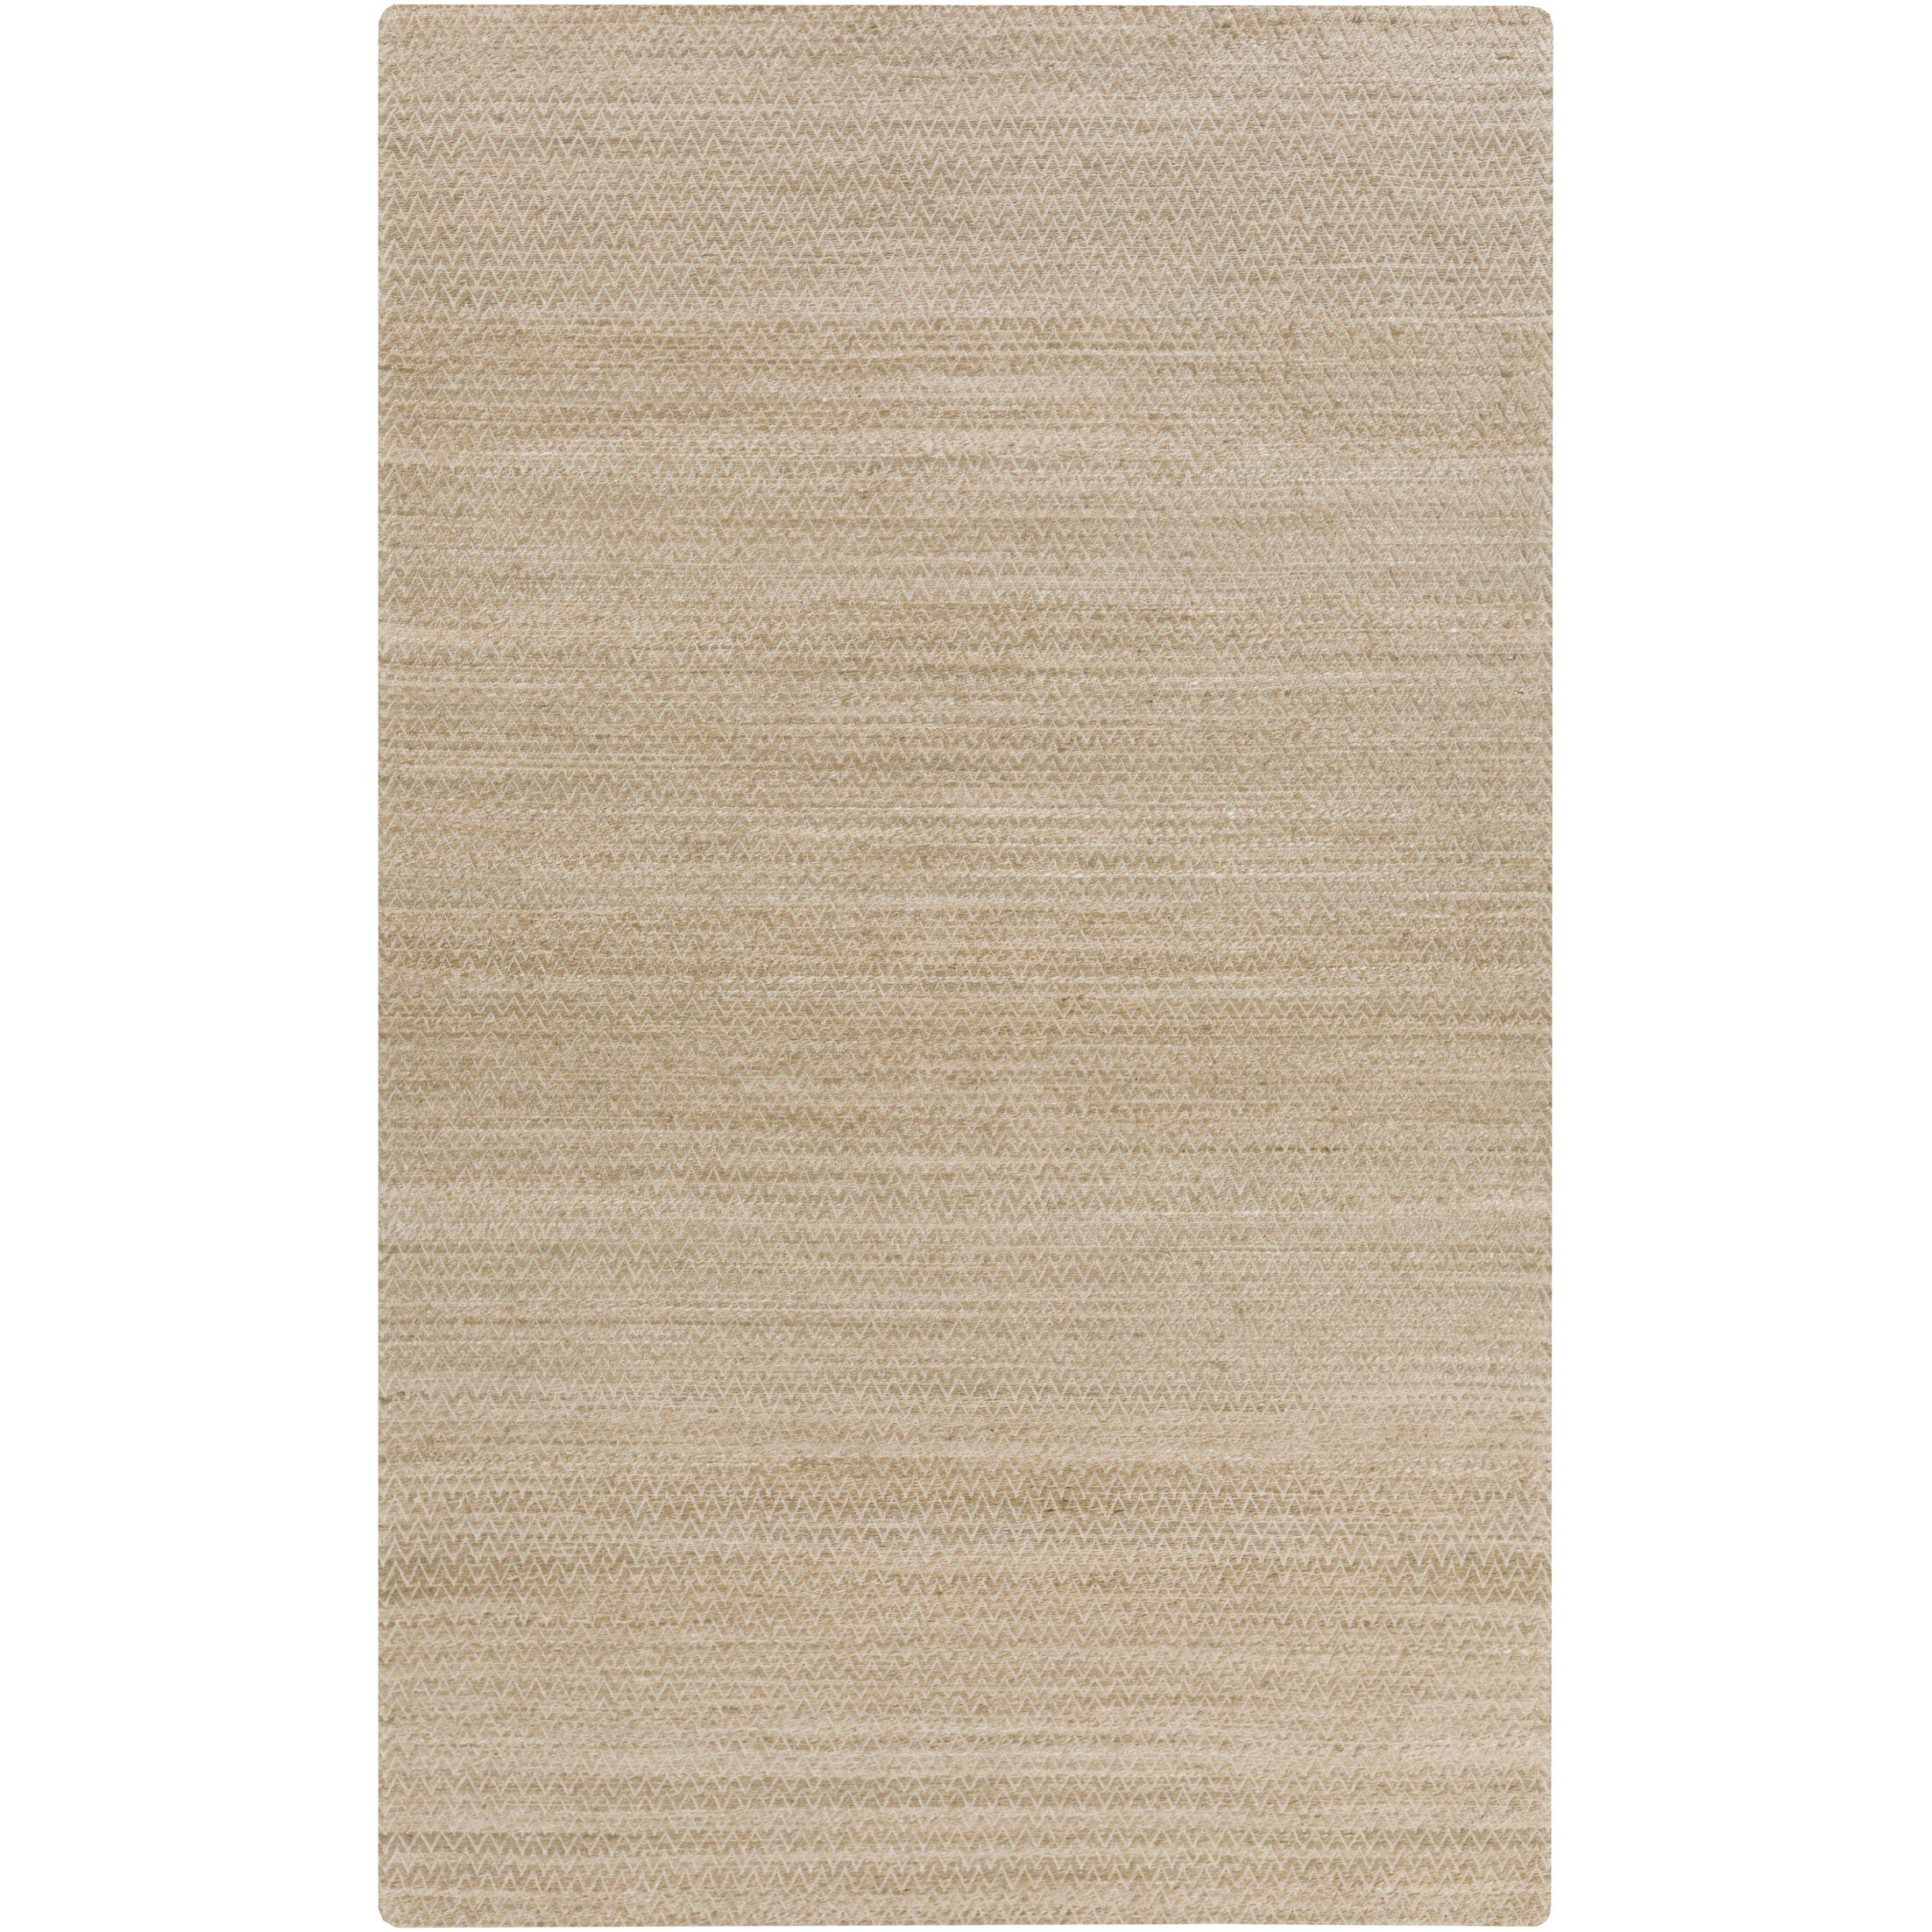 Isabella Hand-Woven Stone Area Rug Rug Size: Rectangle 8' x 11'